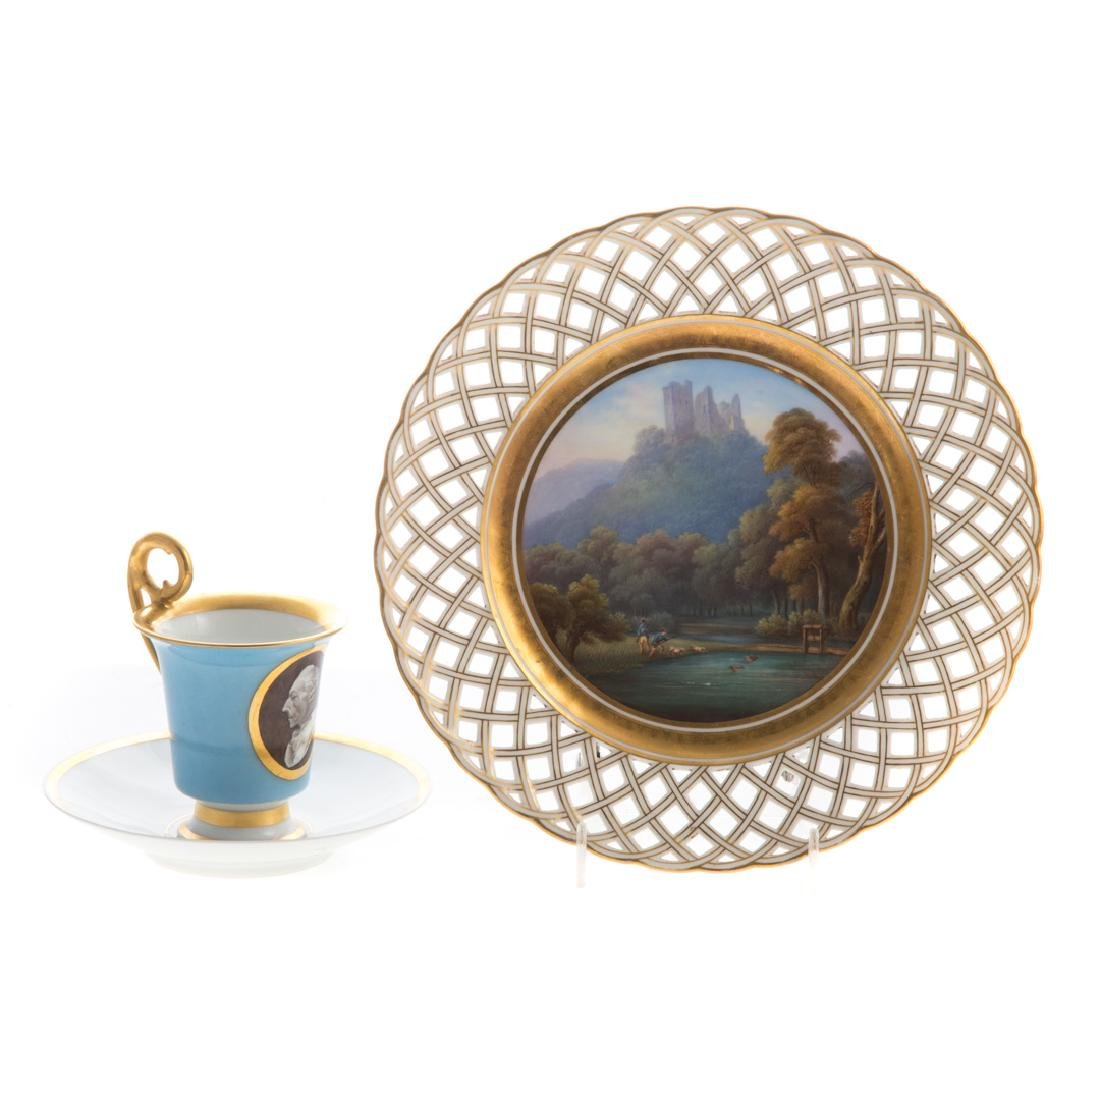 English reticulated plate and French cup & saucer